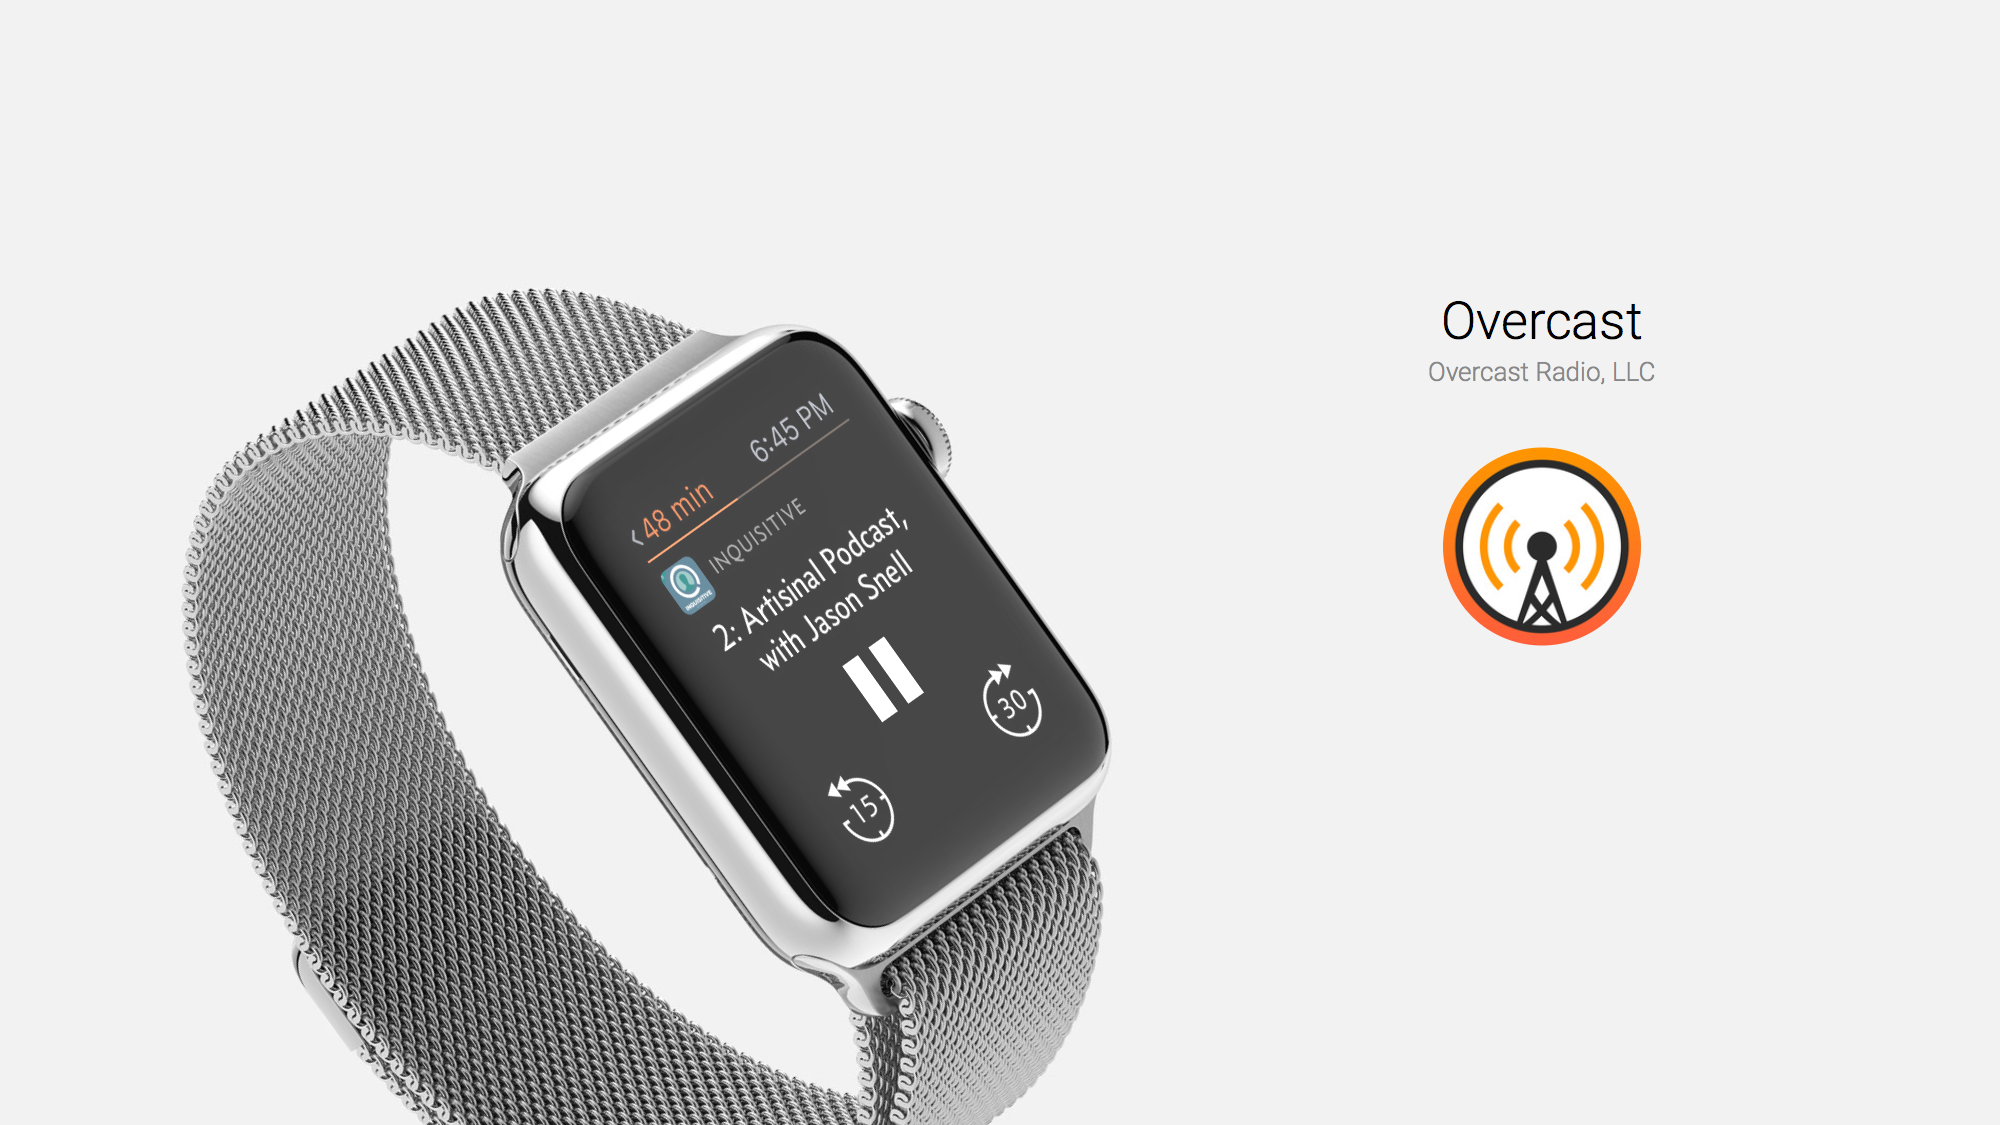 Overcast Podcast Player Gets a Huge Update